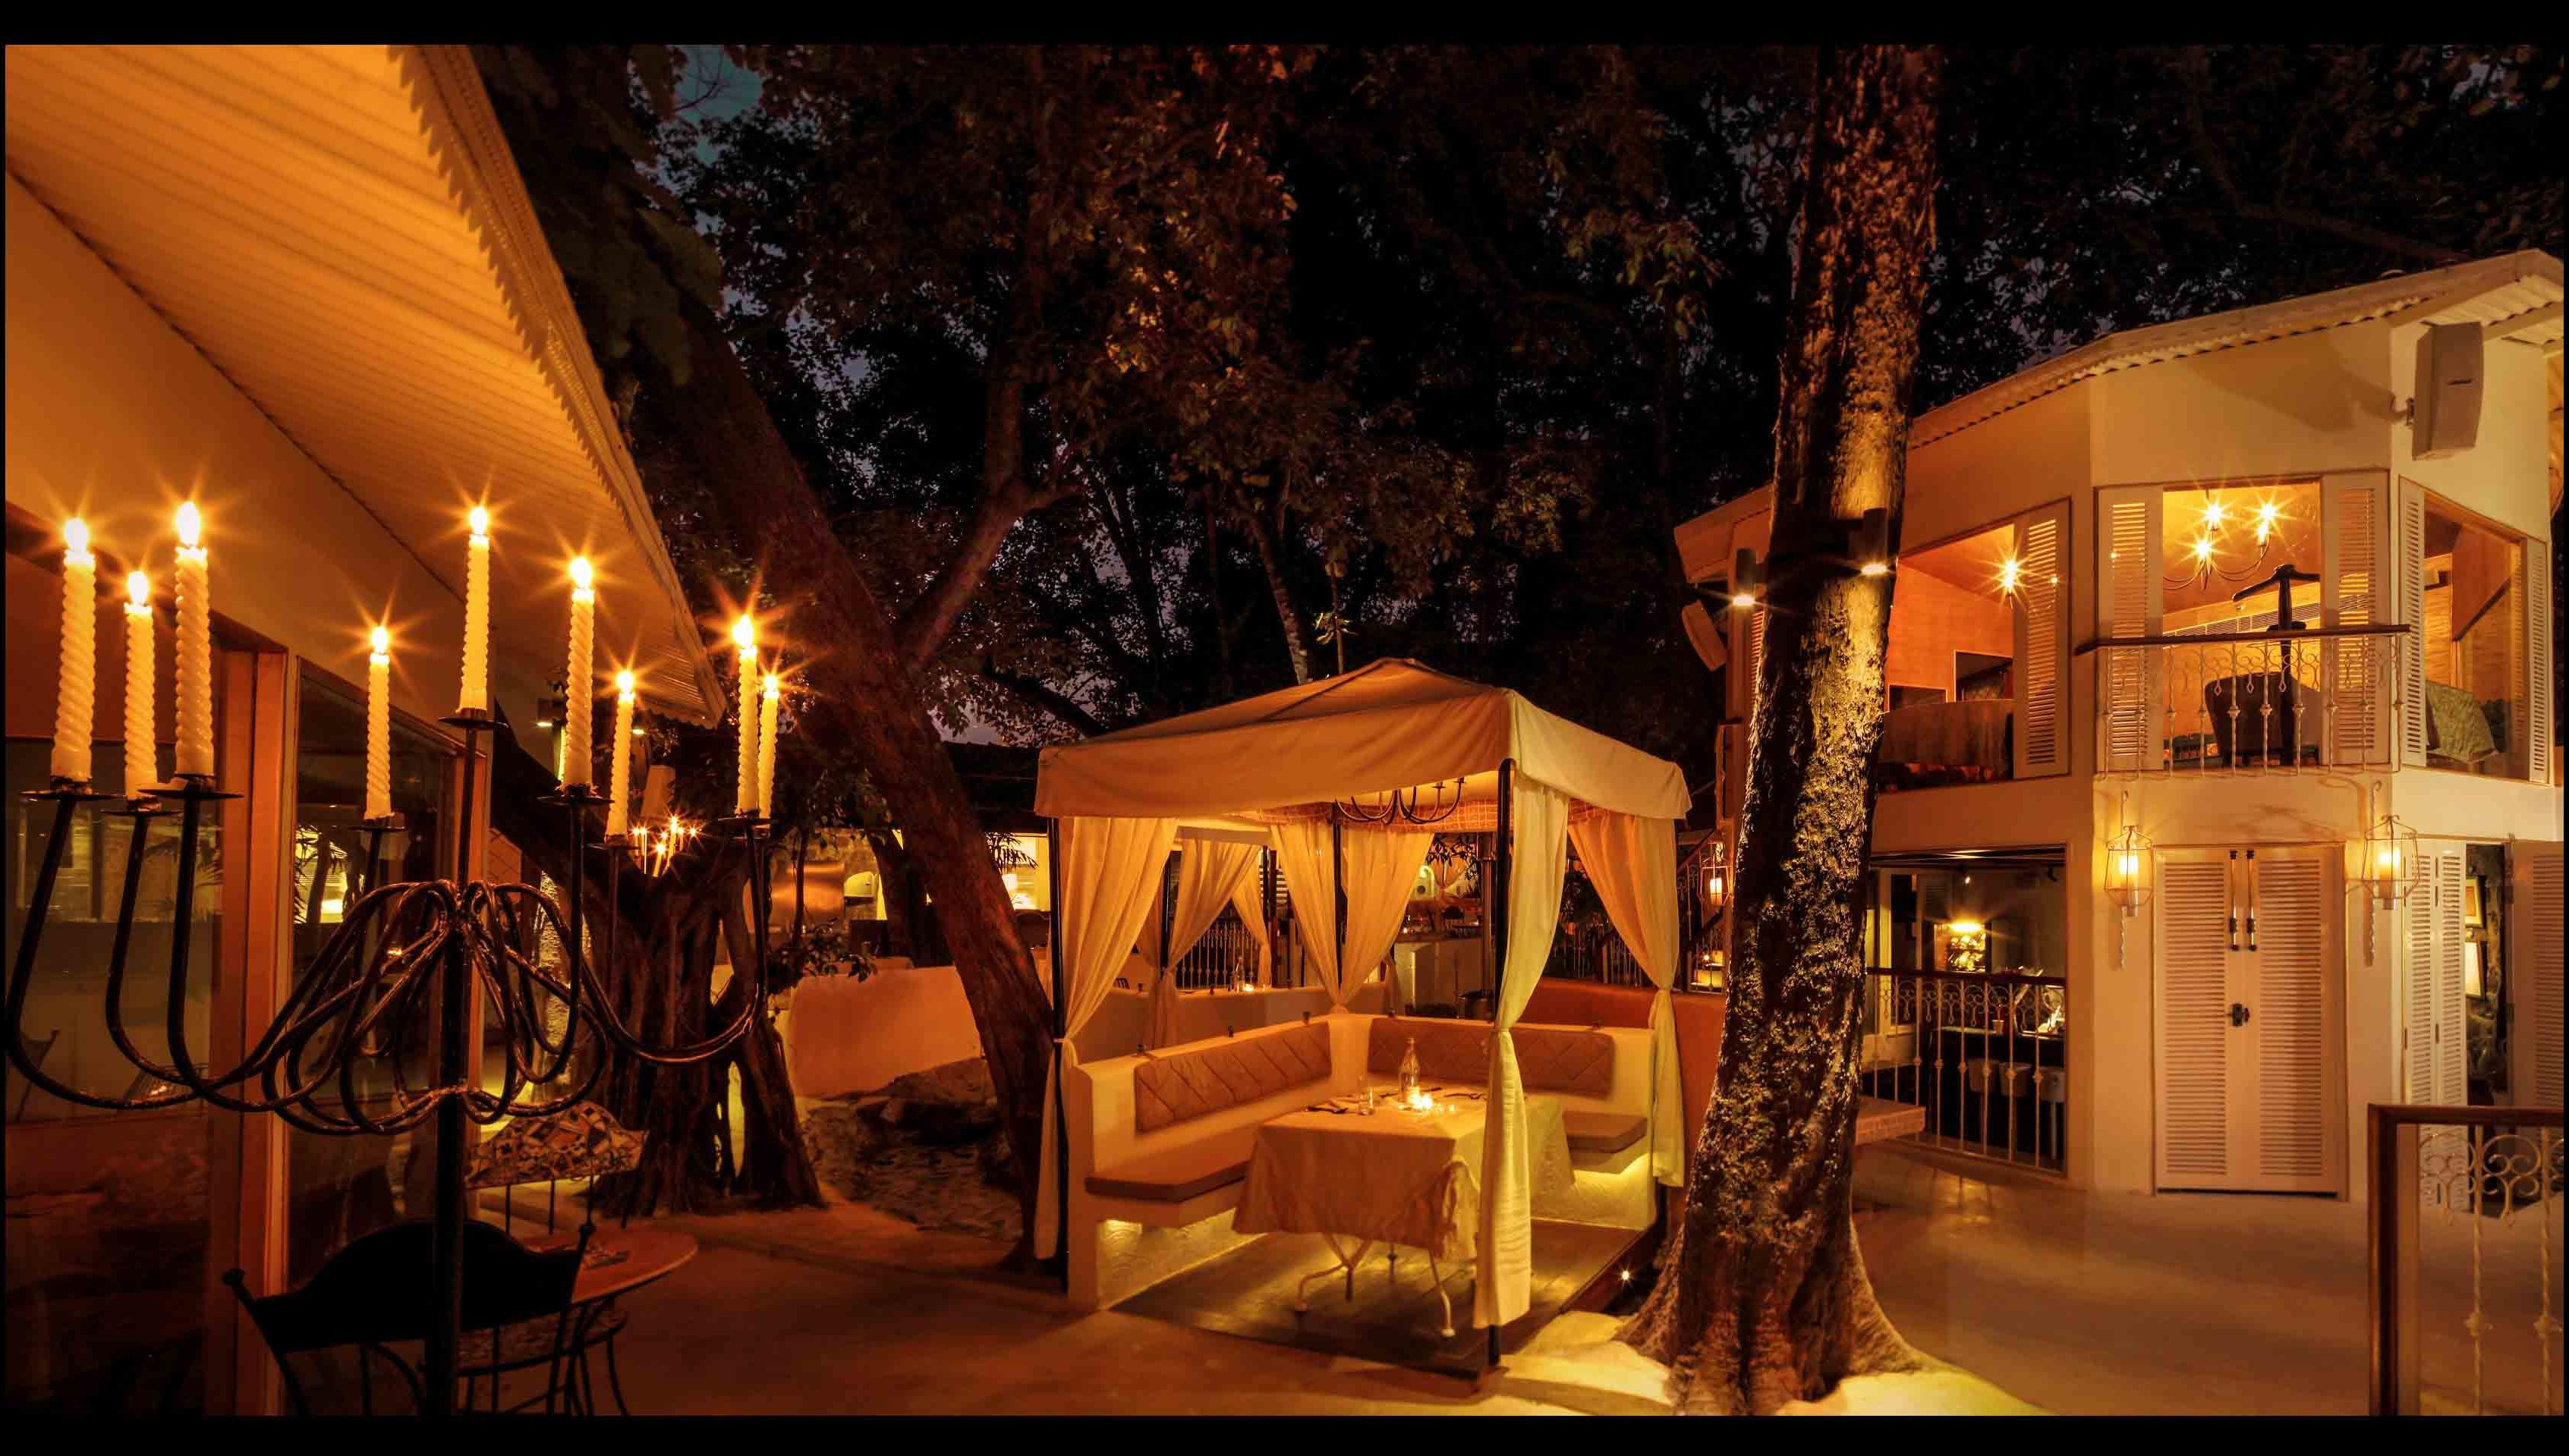 Sevilla: Most Romantic Restaurant in Delhi